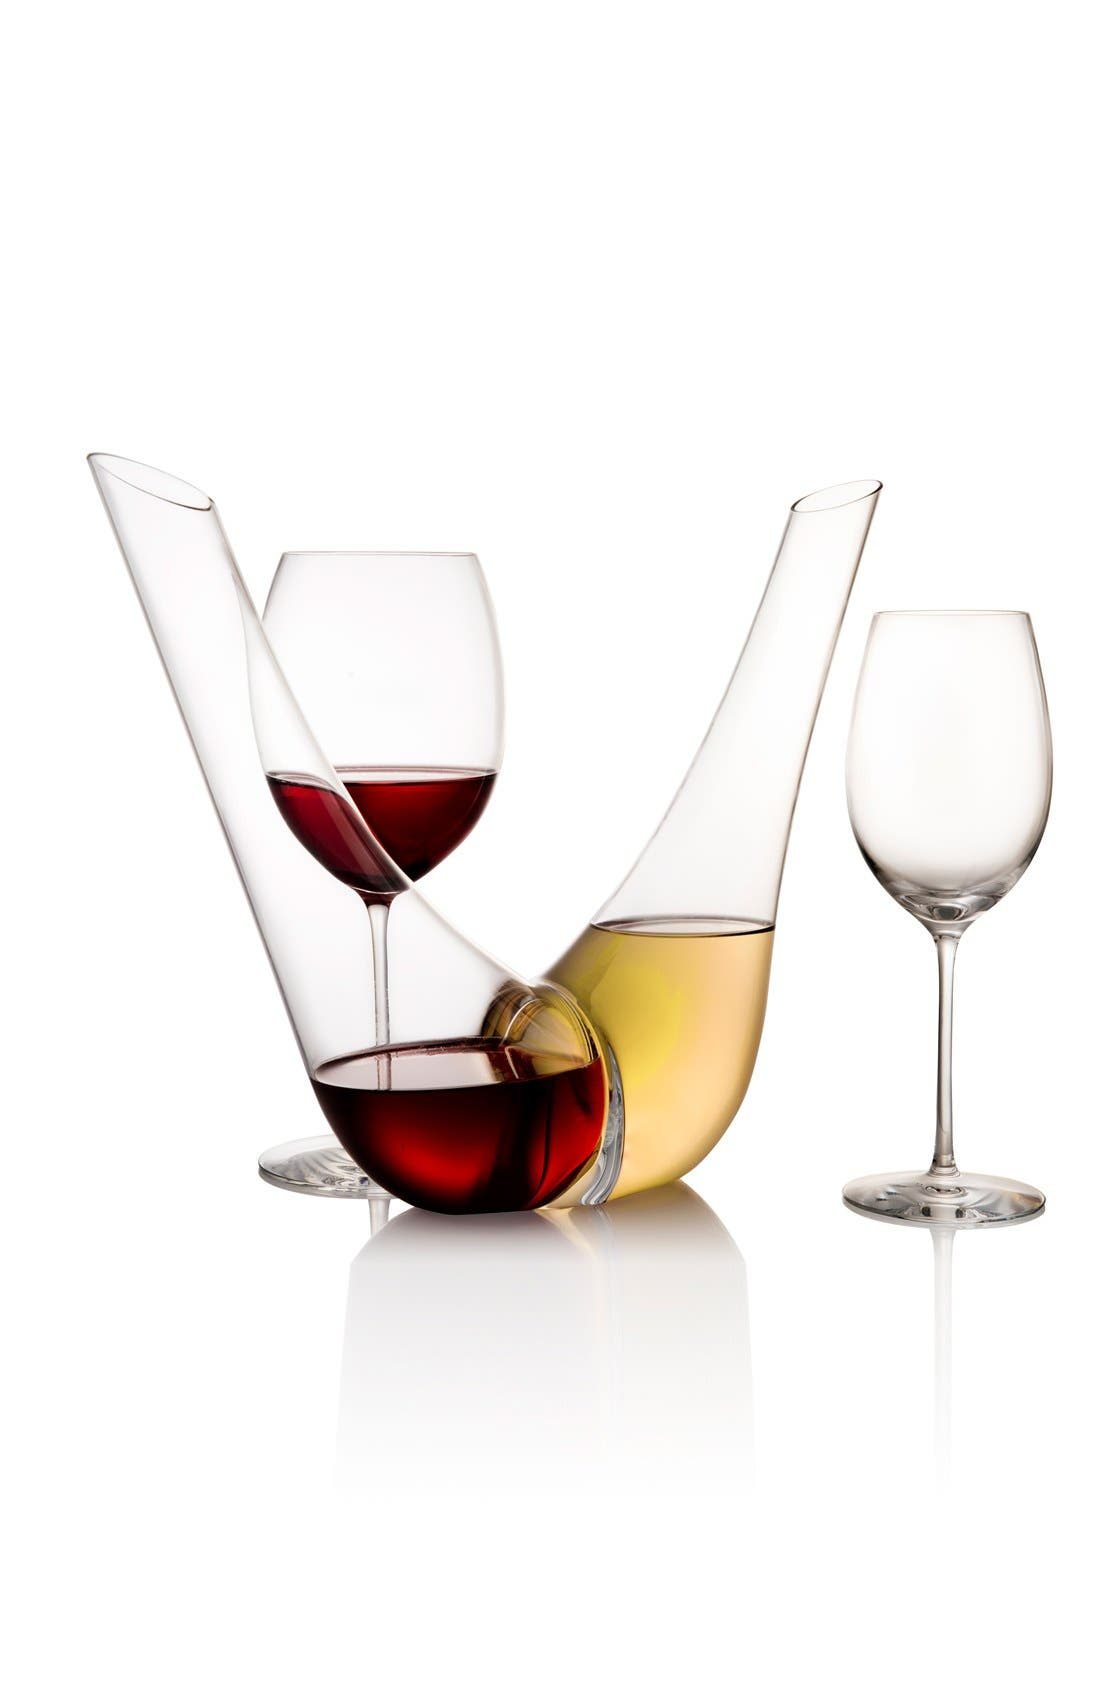 Expert Set of 2 Chardonnay Glasses,                             Alternate thumbnail 2, color,                             100